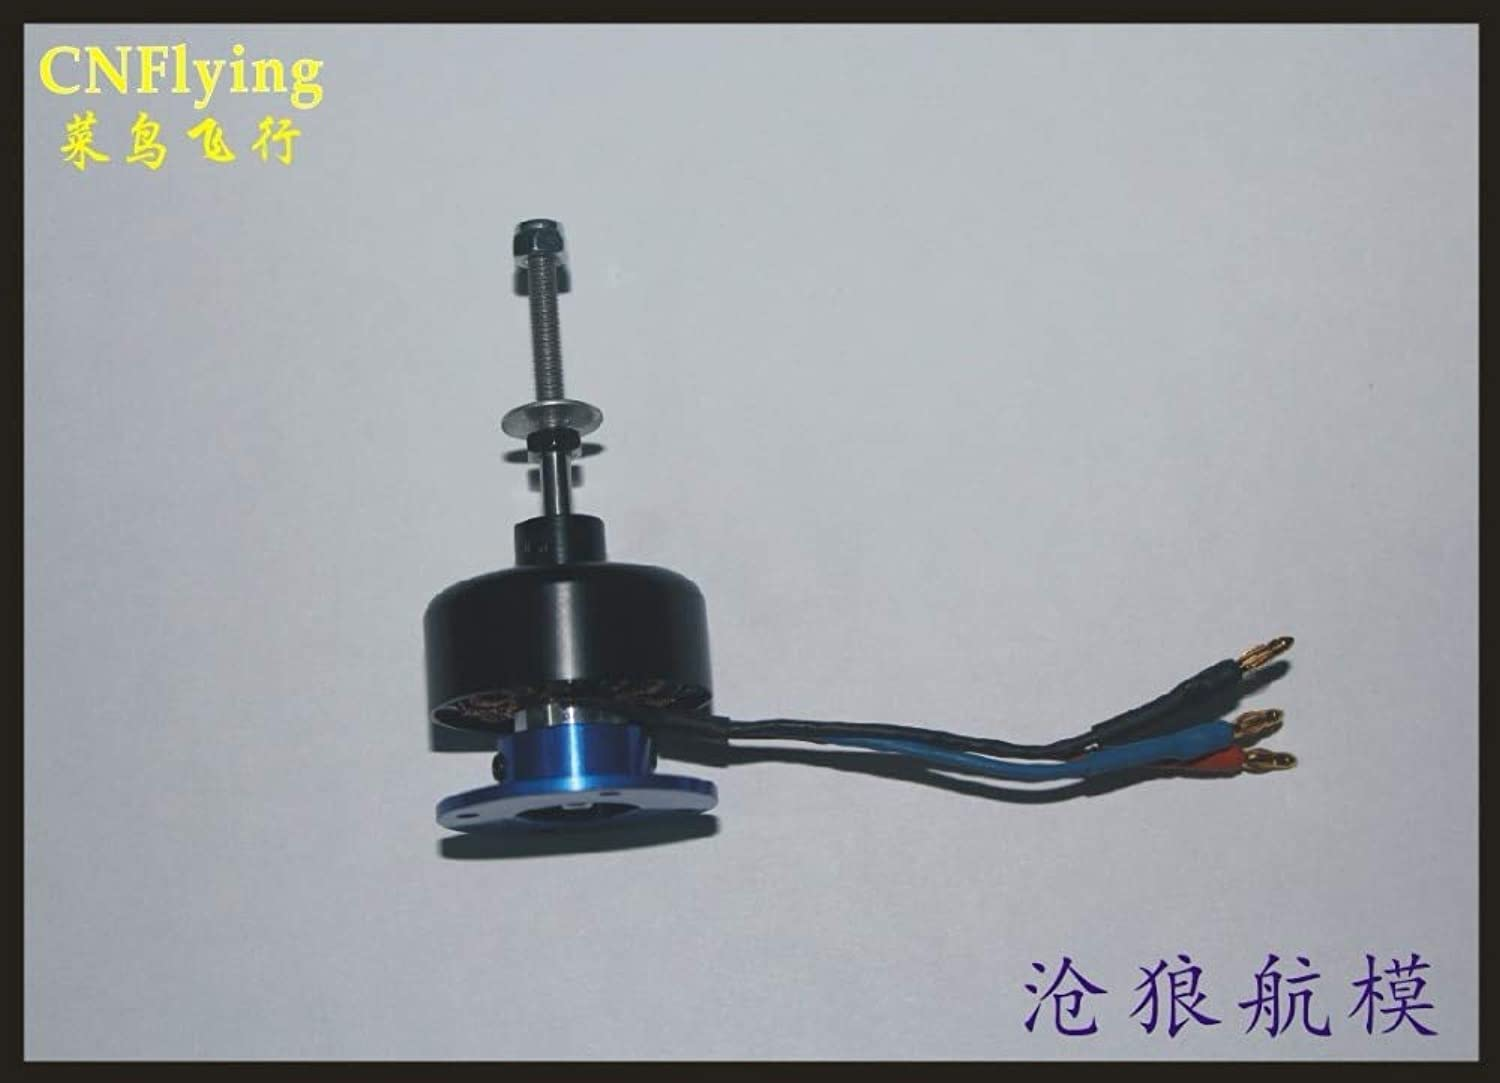 Laliva 2808A brushless Motor for lanyu(volantex rc) Mini Size Park Flyer p51 Mustang (7681)